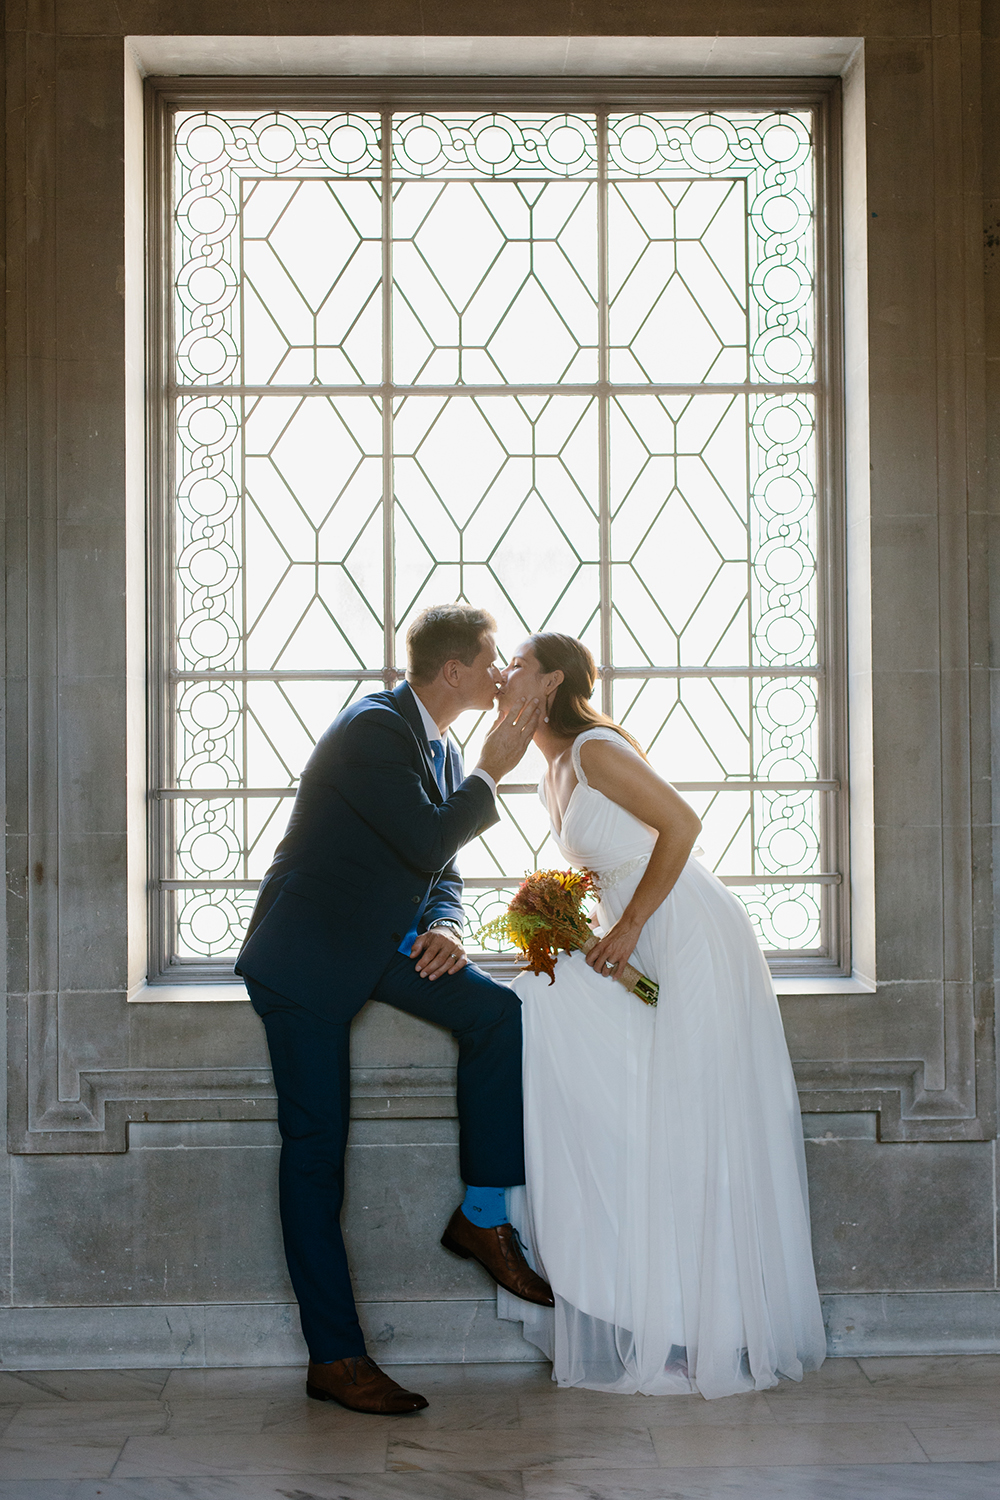 Bride and groom kissing by window after eloping in San Francisco City Hall